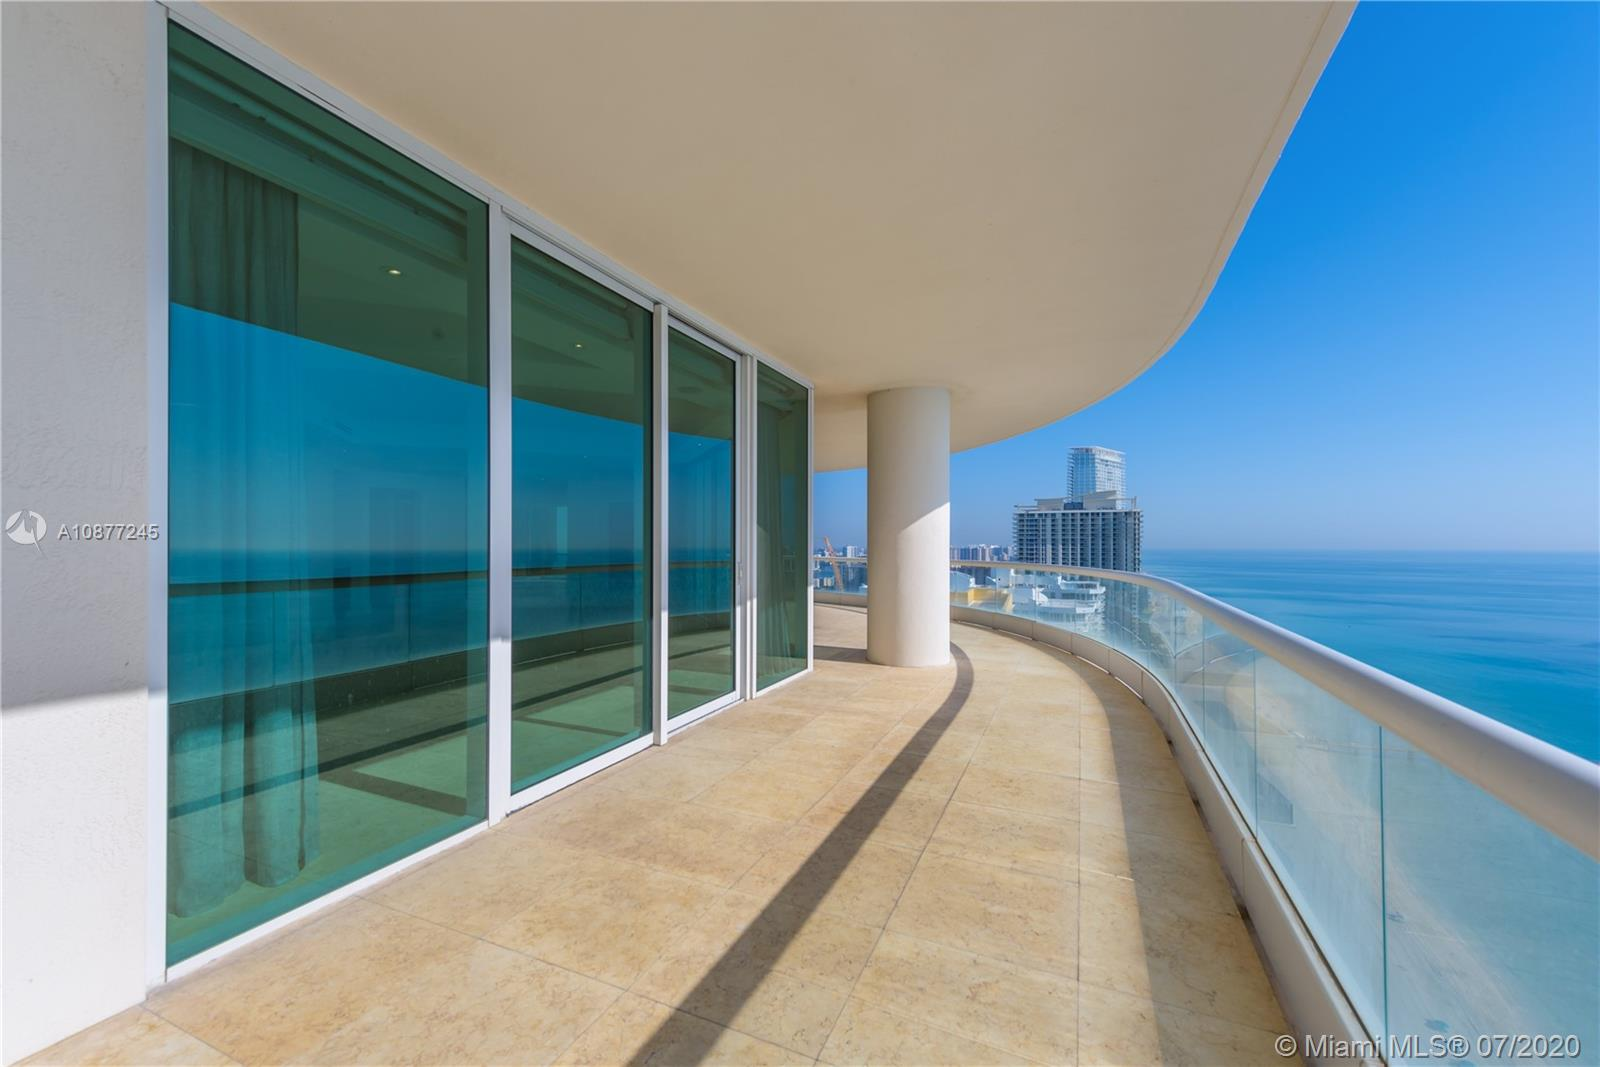 Turnberry Ocean Colony South #3304 - 16051 Collins Ave #3304, Sunny Isles Beach, FL 33160